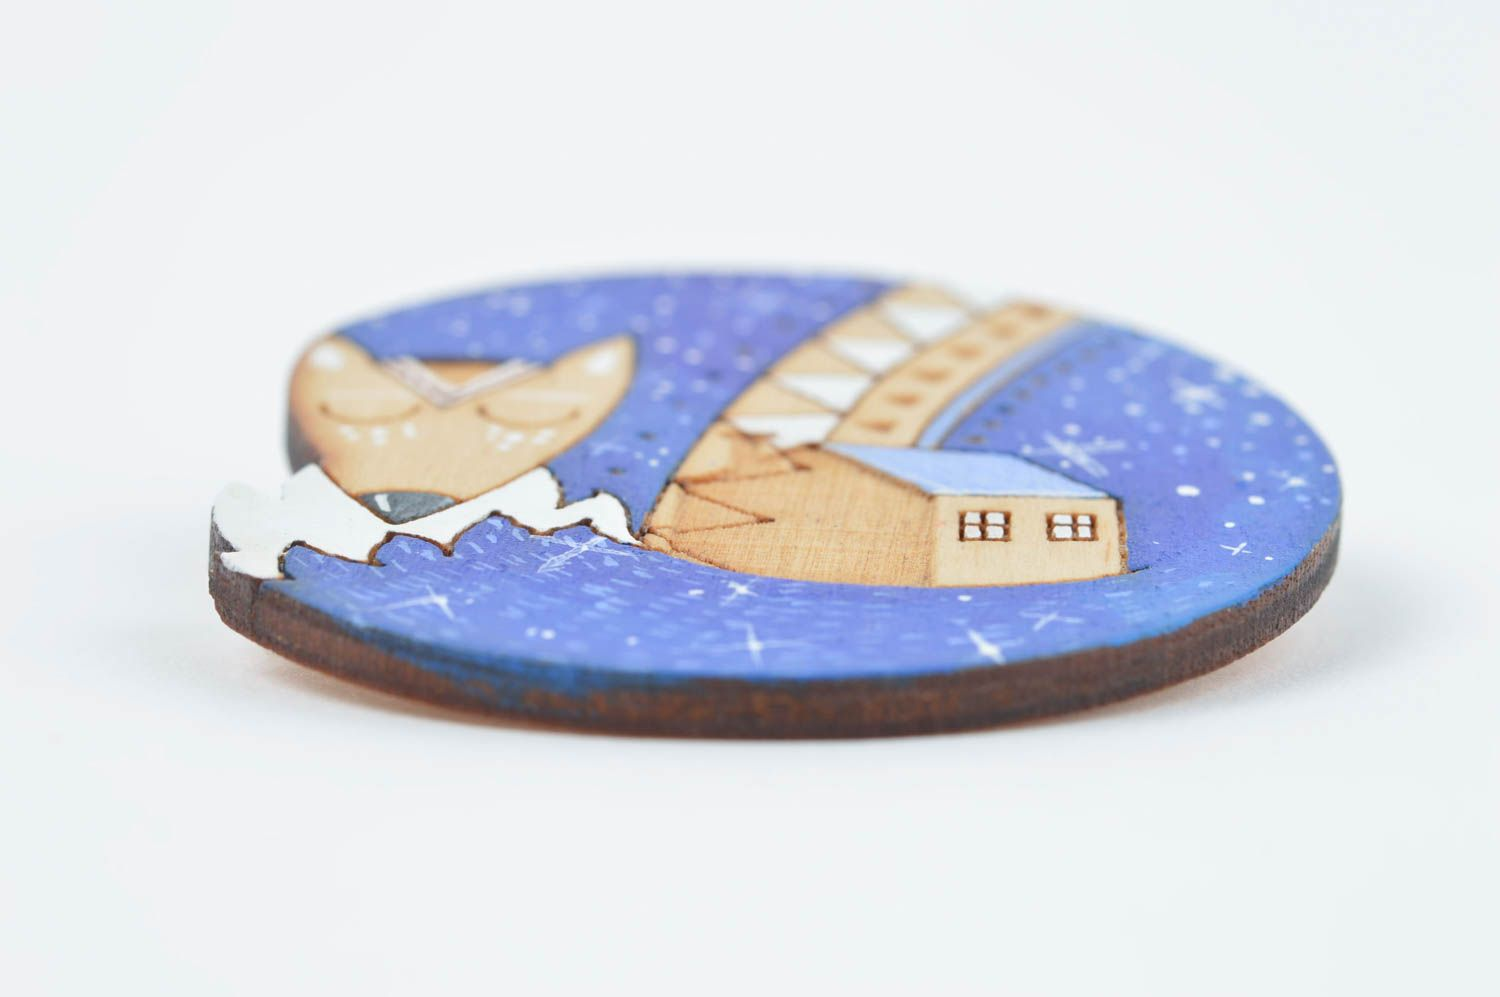 Unusual handmade wooden brooch pin wood craft artisan jewelry gifts for her photo 2